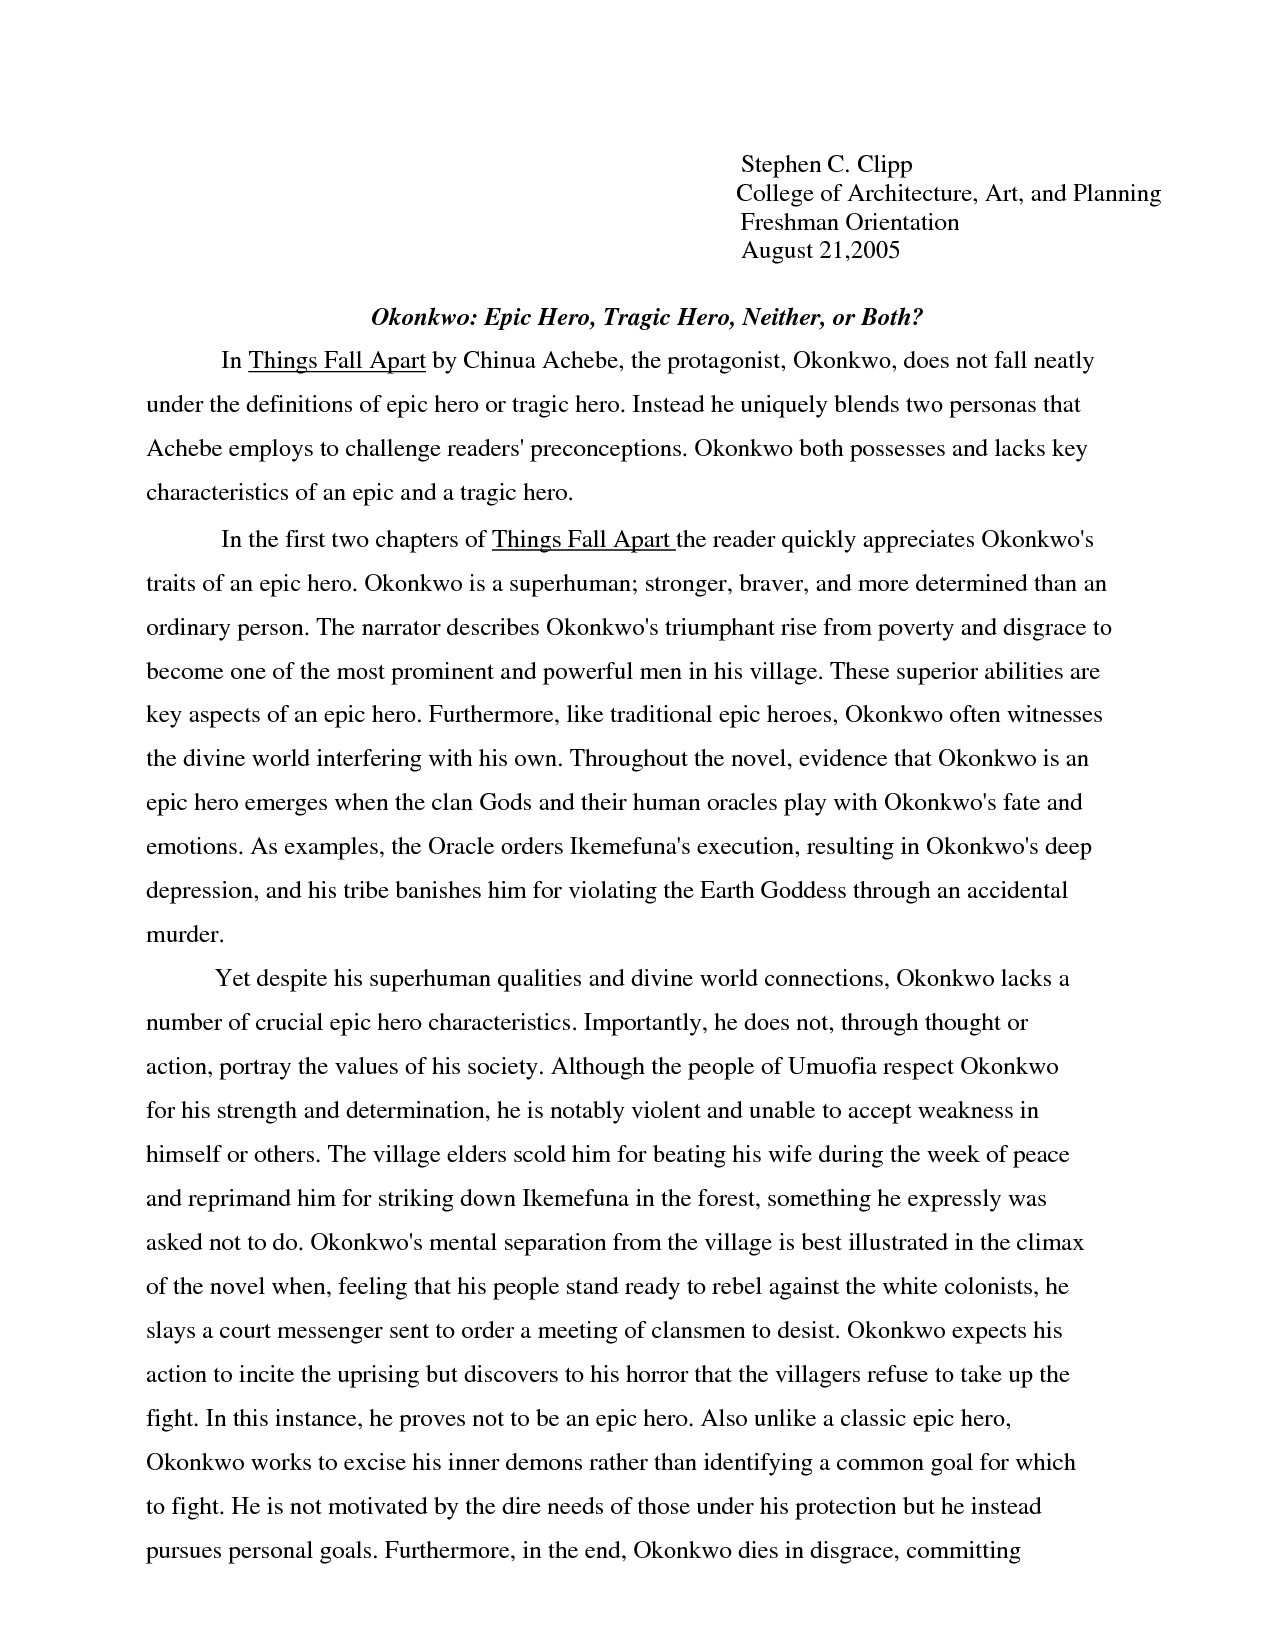 who is the tragic hero in julius caesar essay Writing conclusions for research papers julius caesar tragic hero essay conclusion for dream essay satirical essay on obesity.